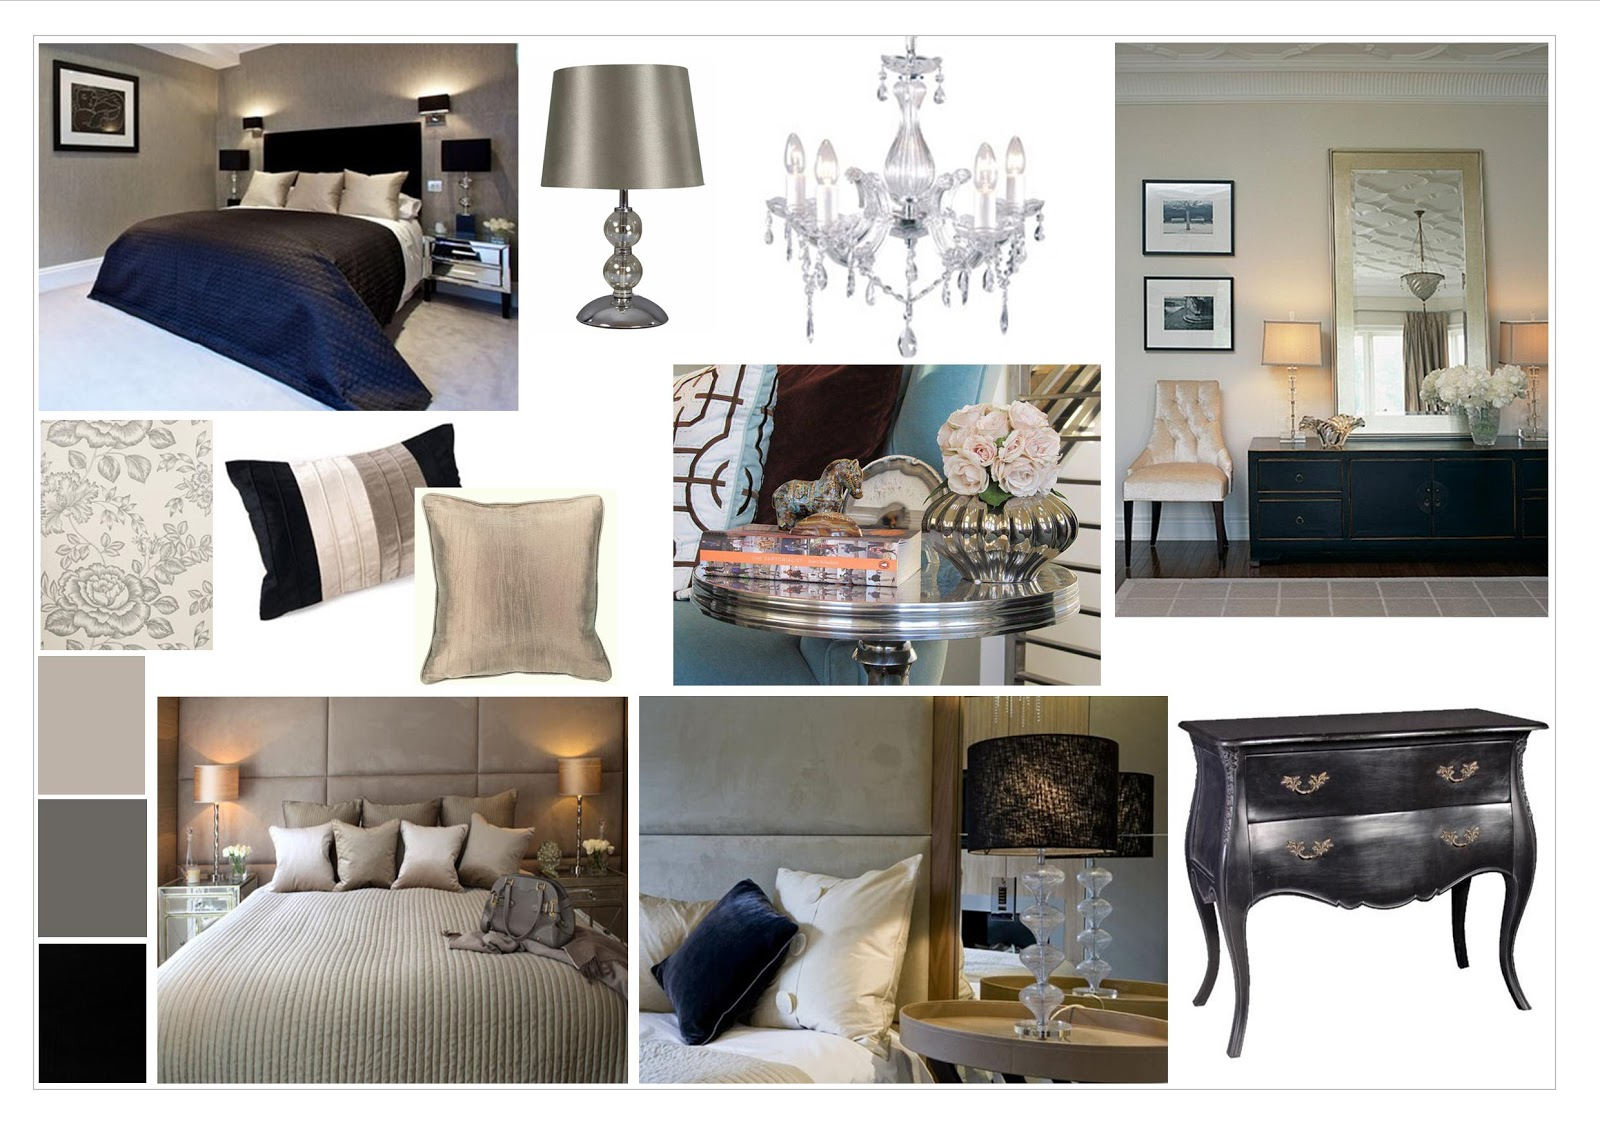 laura adkin interiors mood board luxury bedroom rh dreamboxinteriordesign blogspot com